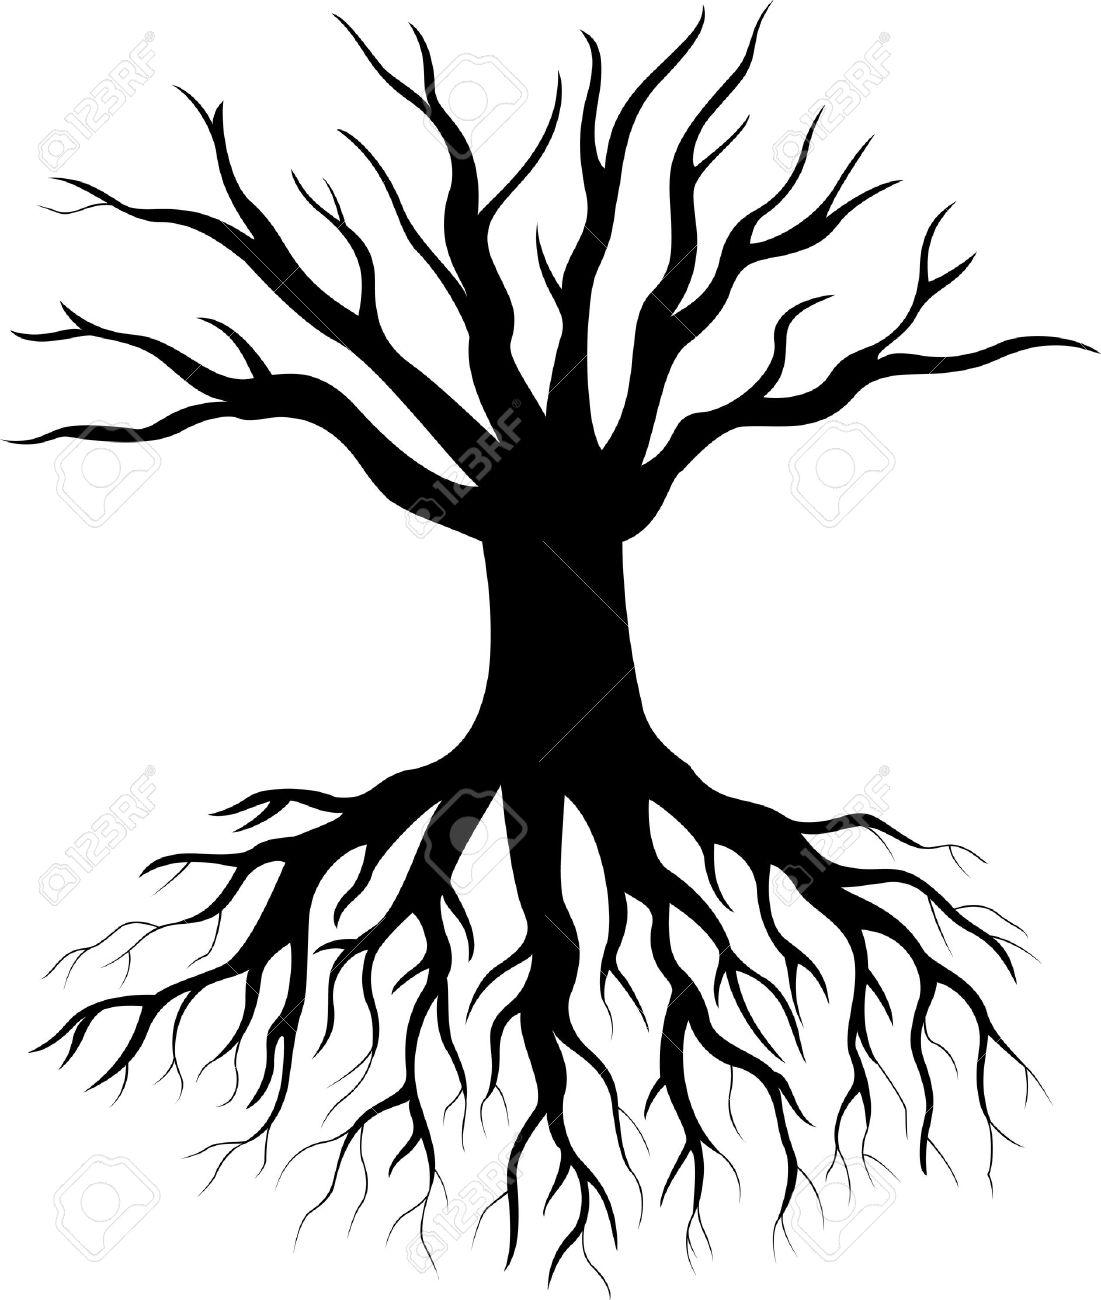 Tree Silhouette Cartoon Royalty Free Cliparts Vectors And Stock Illustration Image 33367725 Watch and download a tree with deep roots with english sub in high quality. tree silhouette cartoon